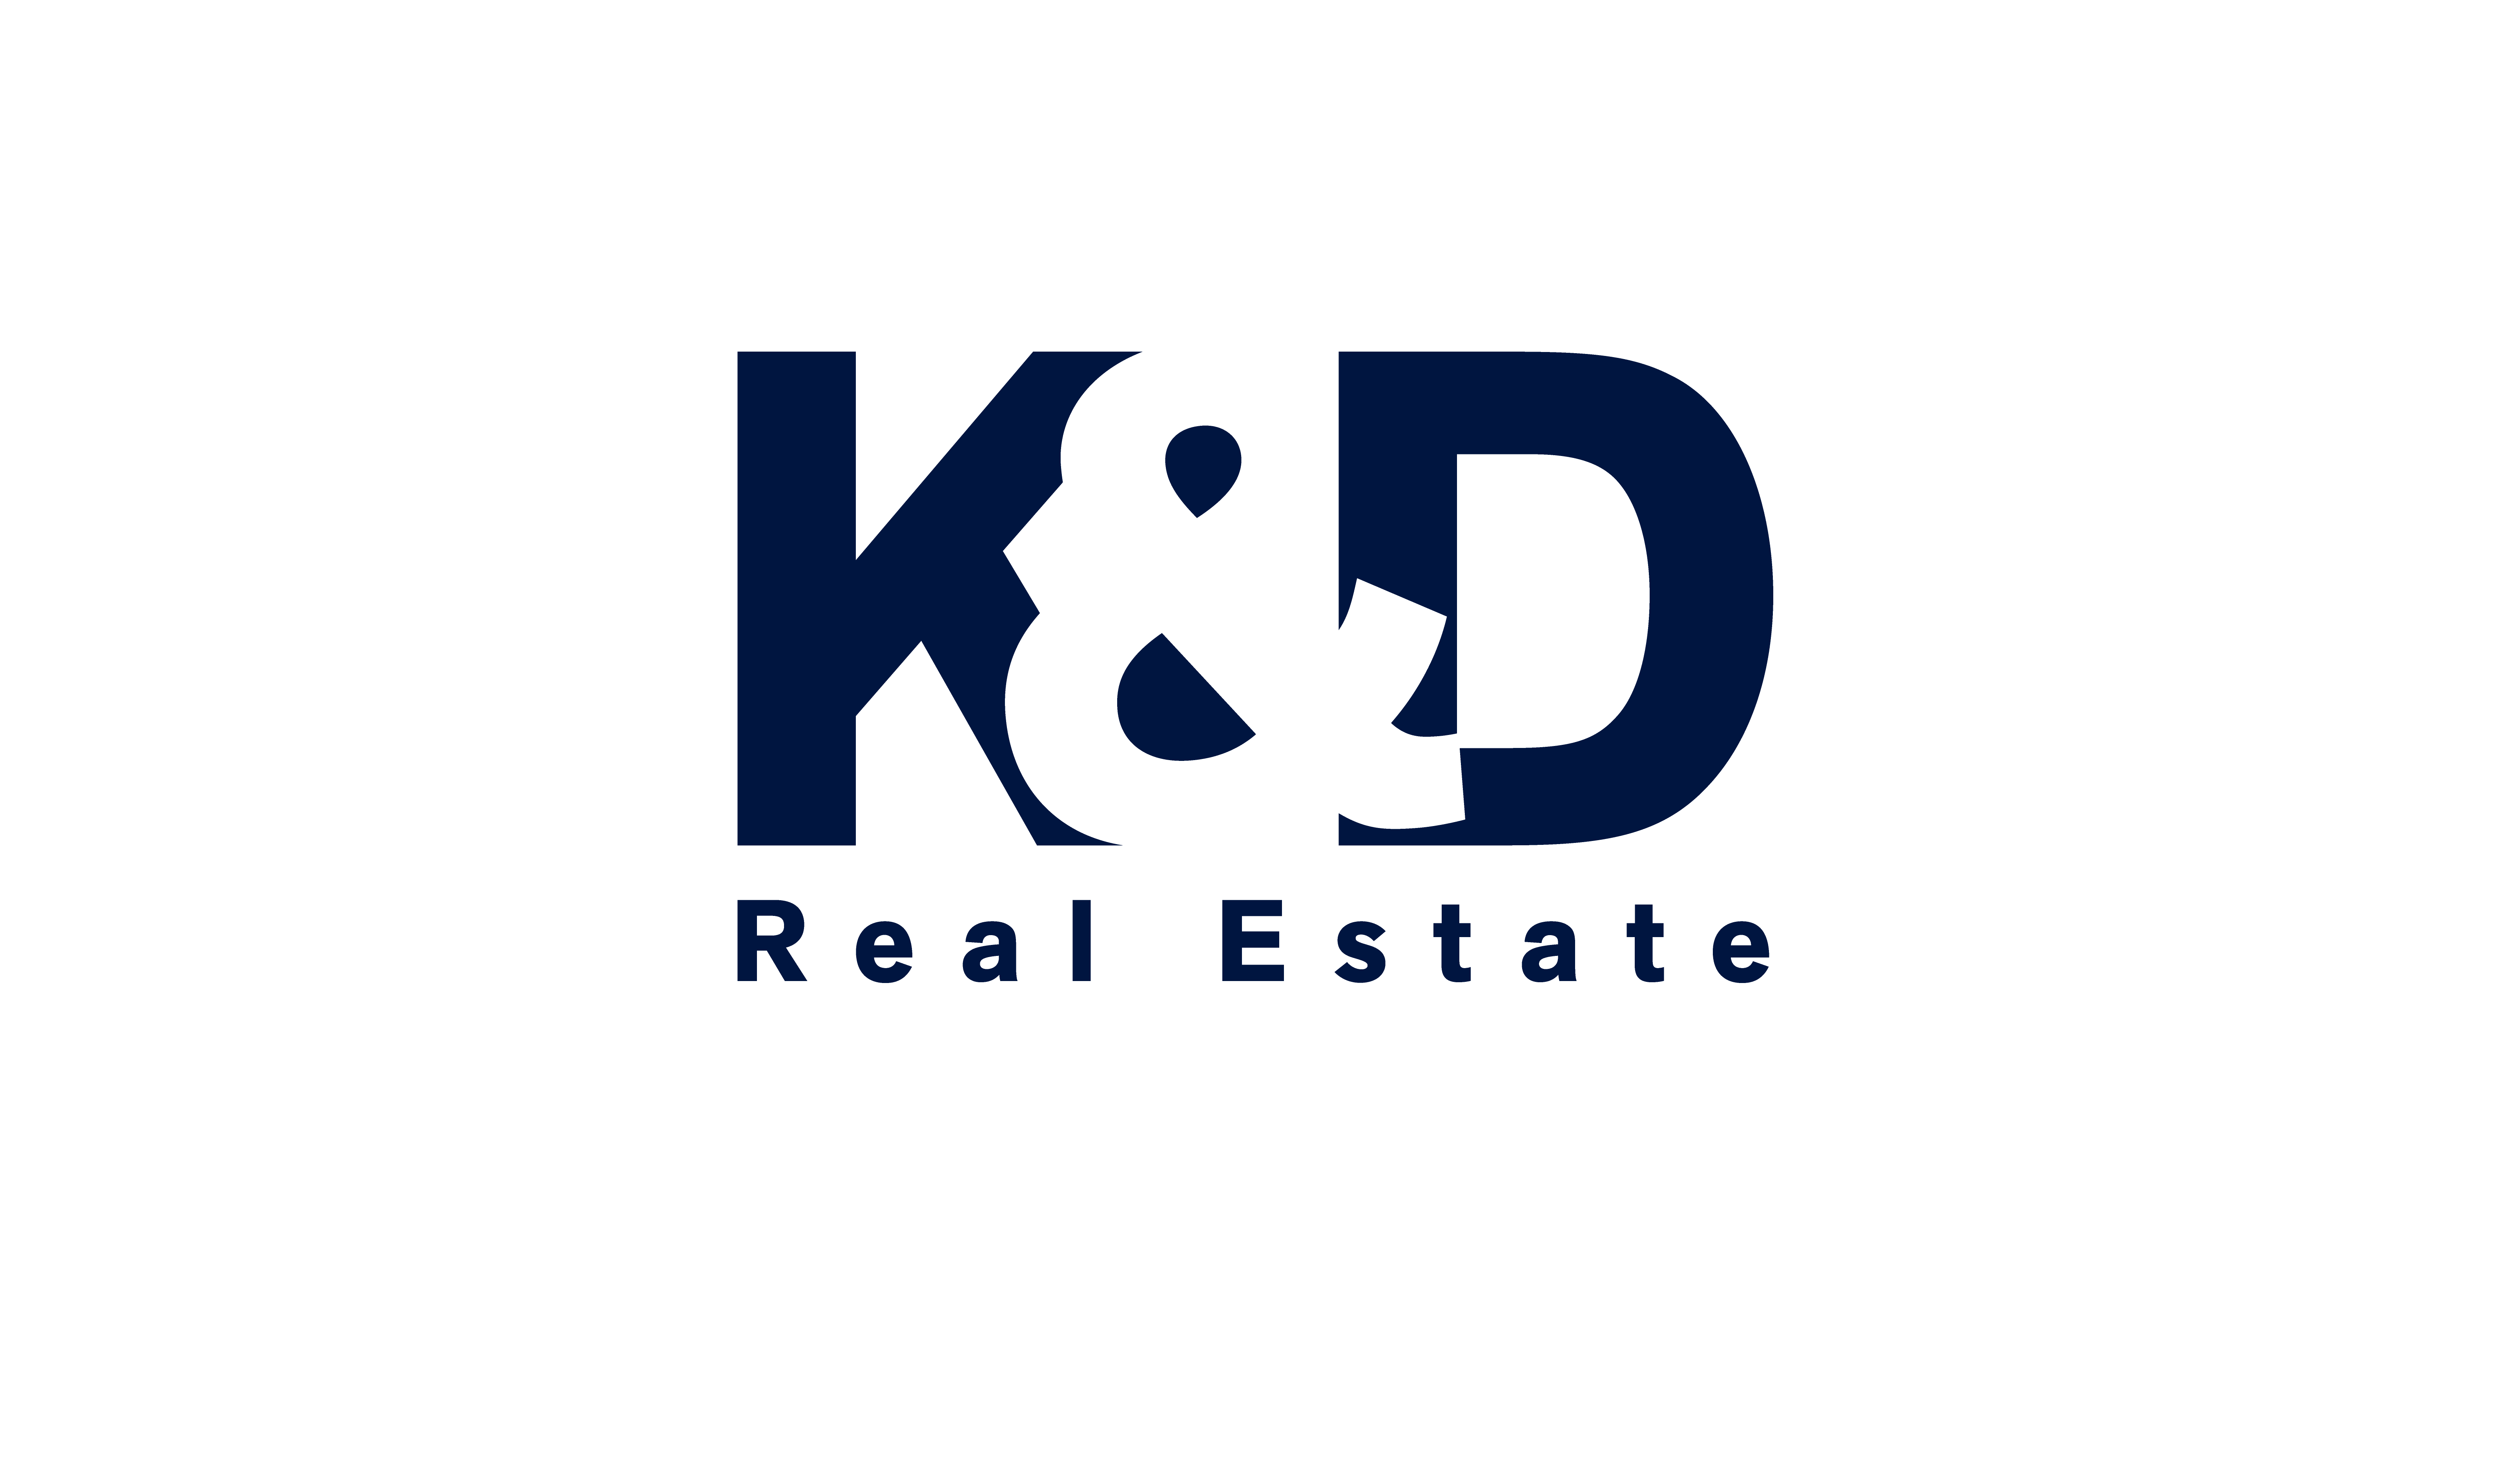 Karen and Drew Real Estate